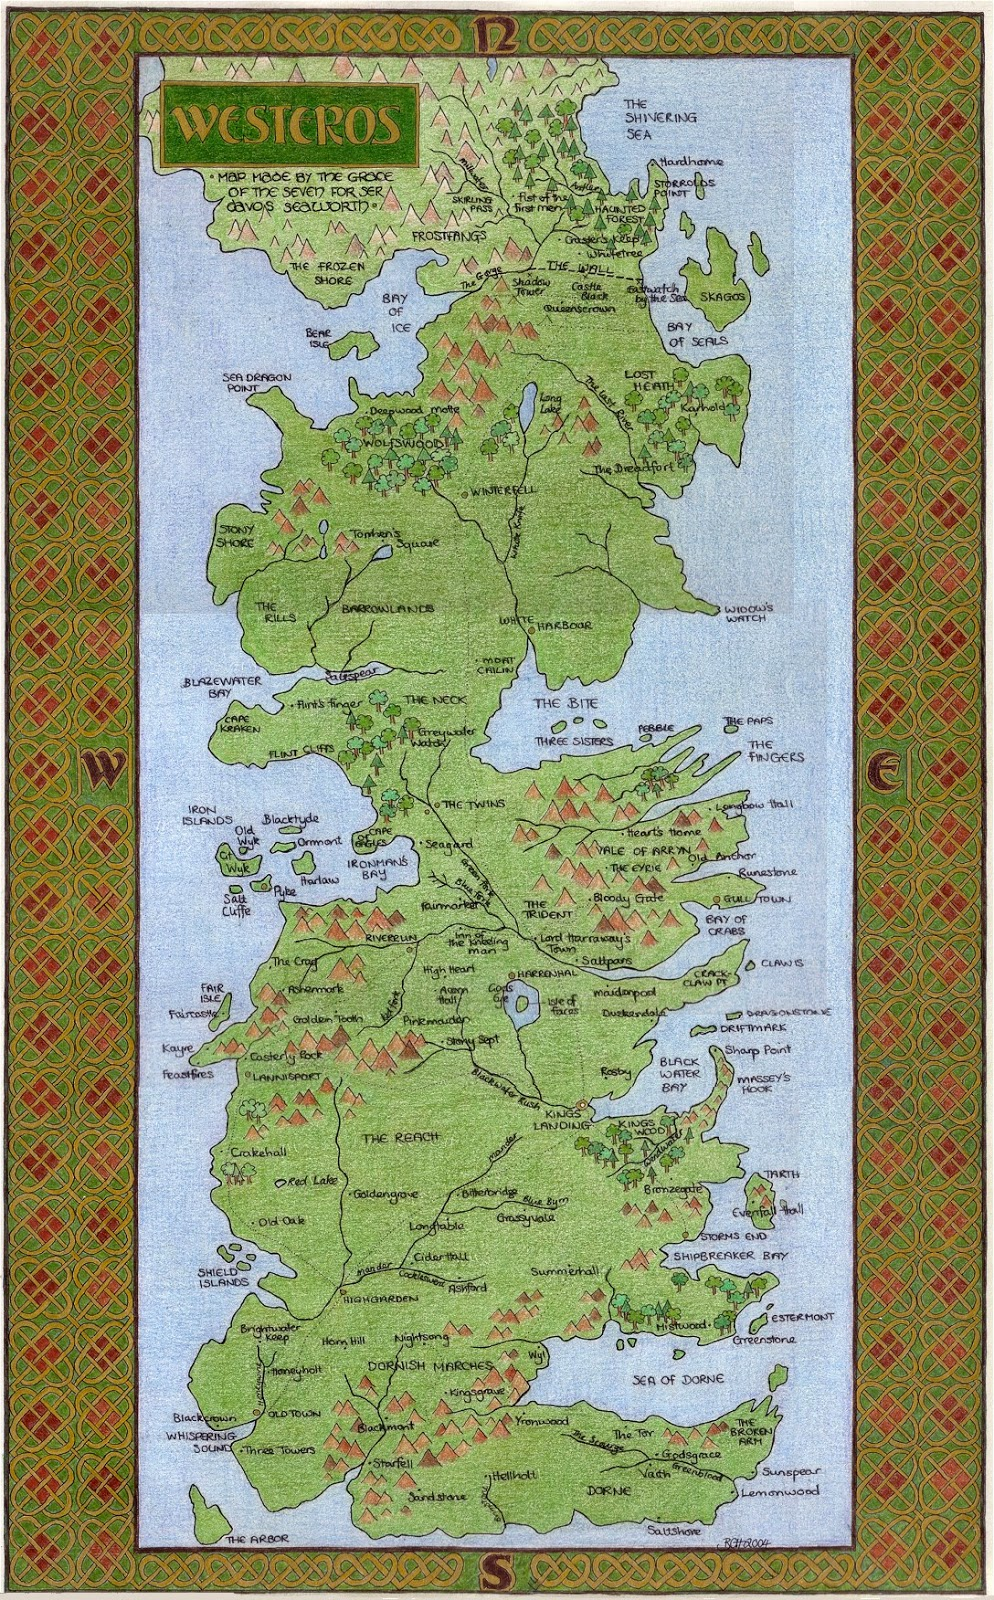 Westeros map for Game of Thrones |Westeros Map